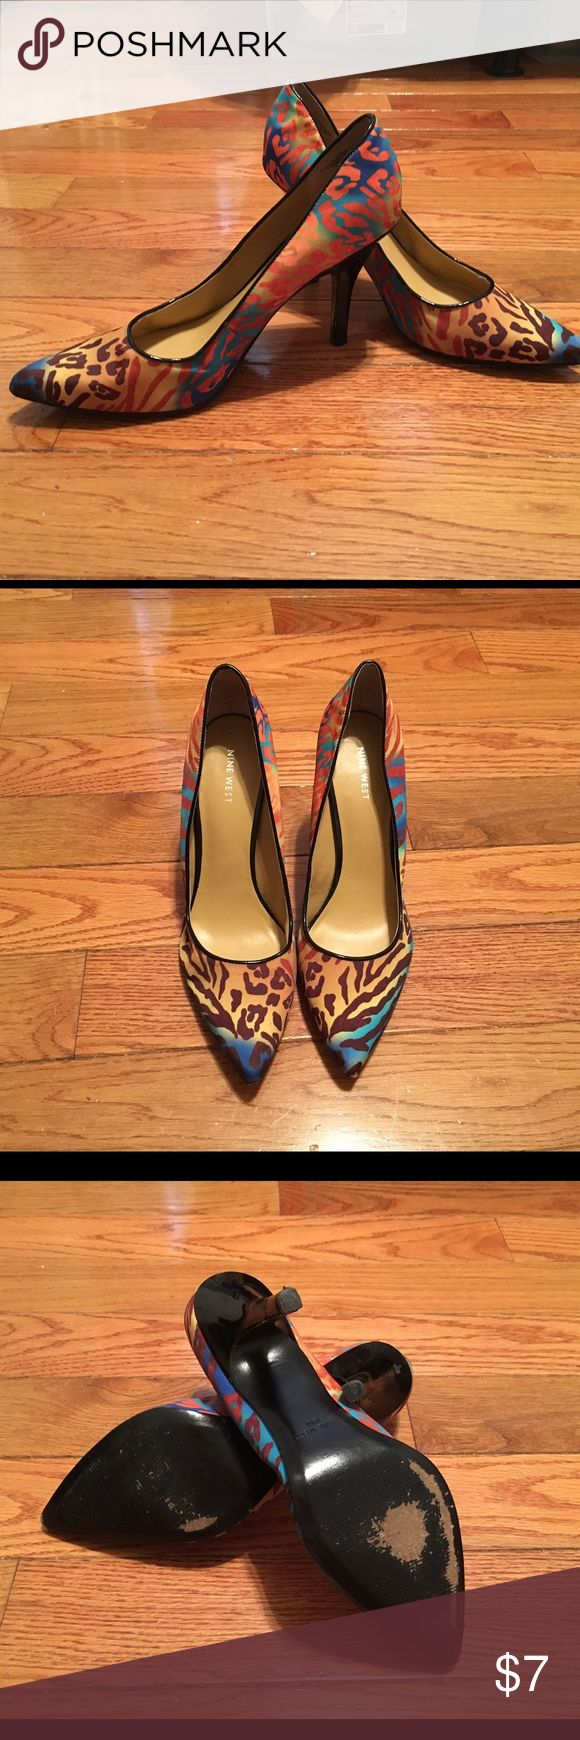 Nine West Multi colored Heels Take a walk on the wild side with these multi colored zebra heels. Add some flare to your all black outfit or more casual with some jeans. Nine West Shoes Heels